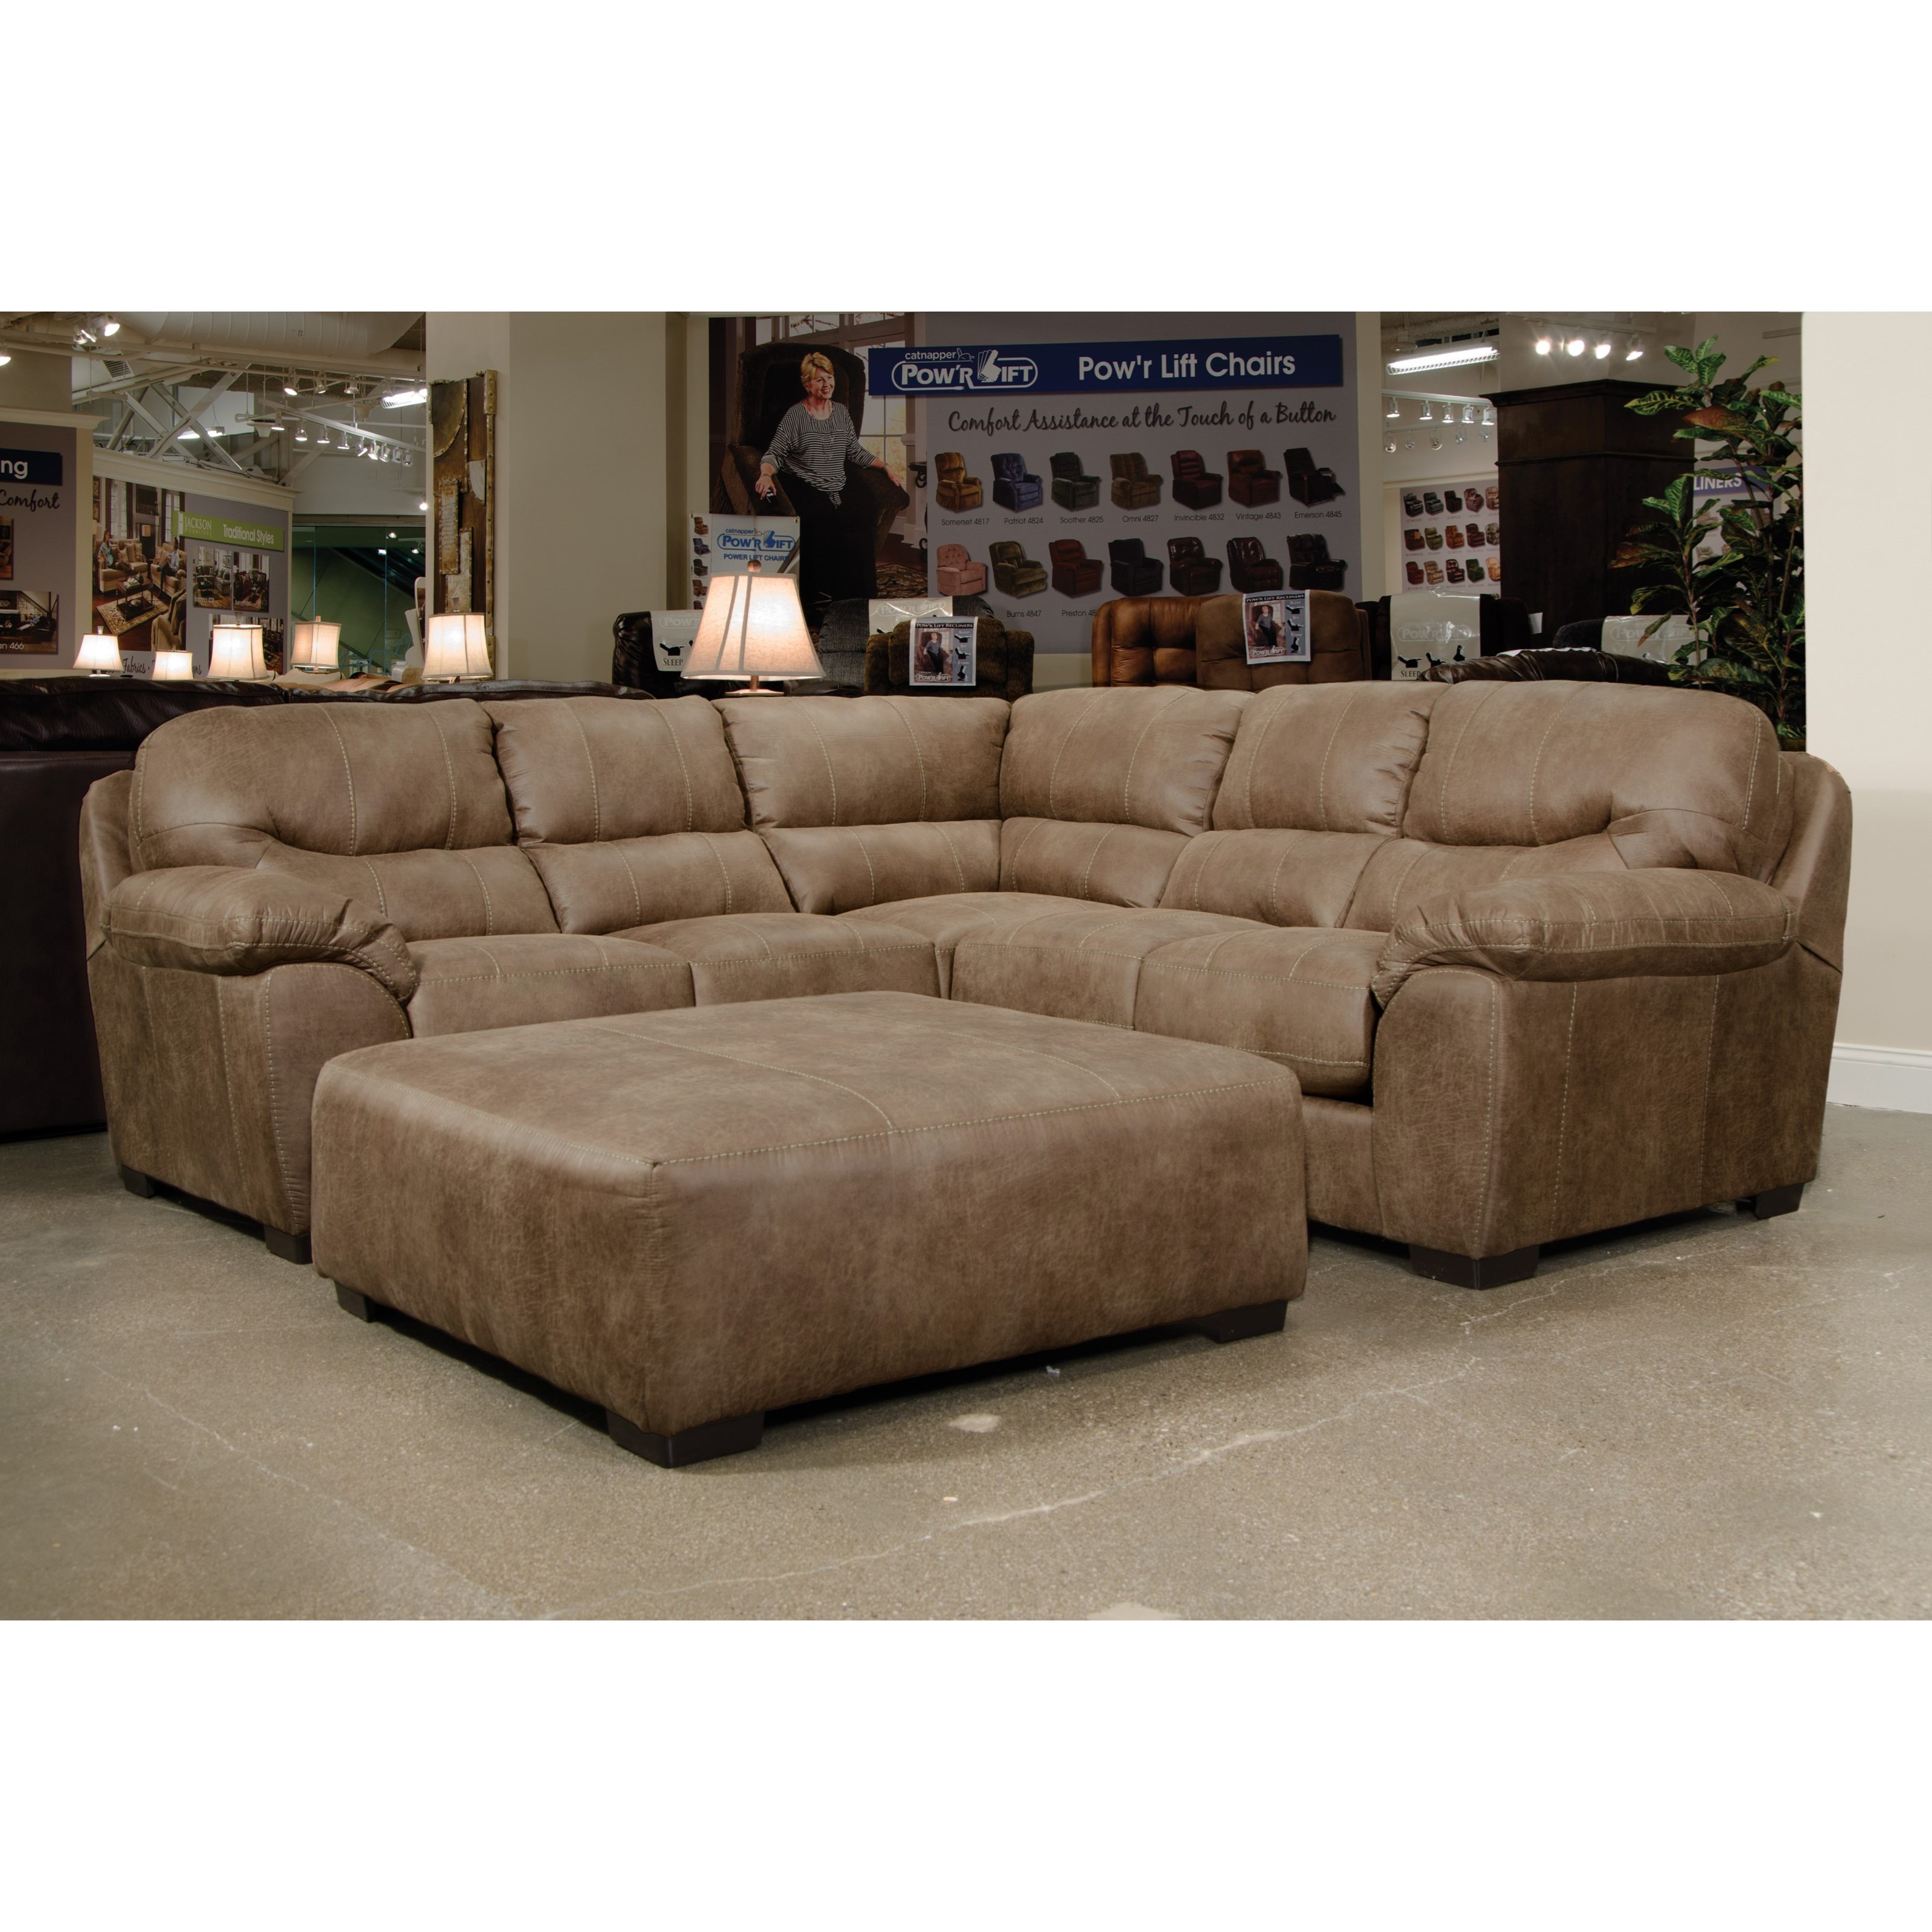 Sectional Sofa By Jackson Furniture Wolf And Gardiner Wolf Furniture